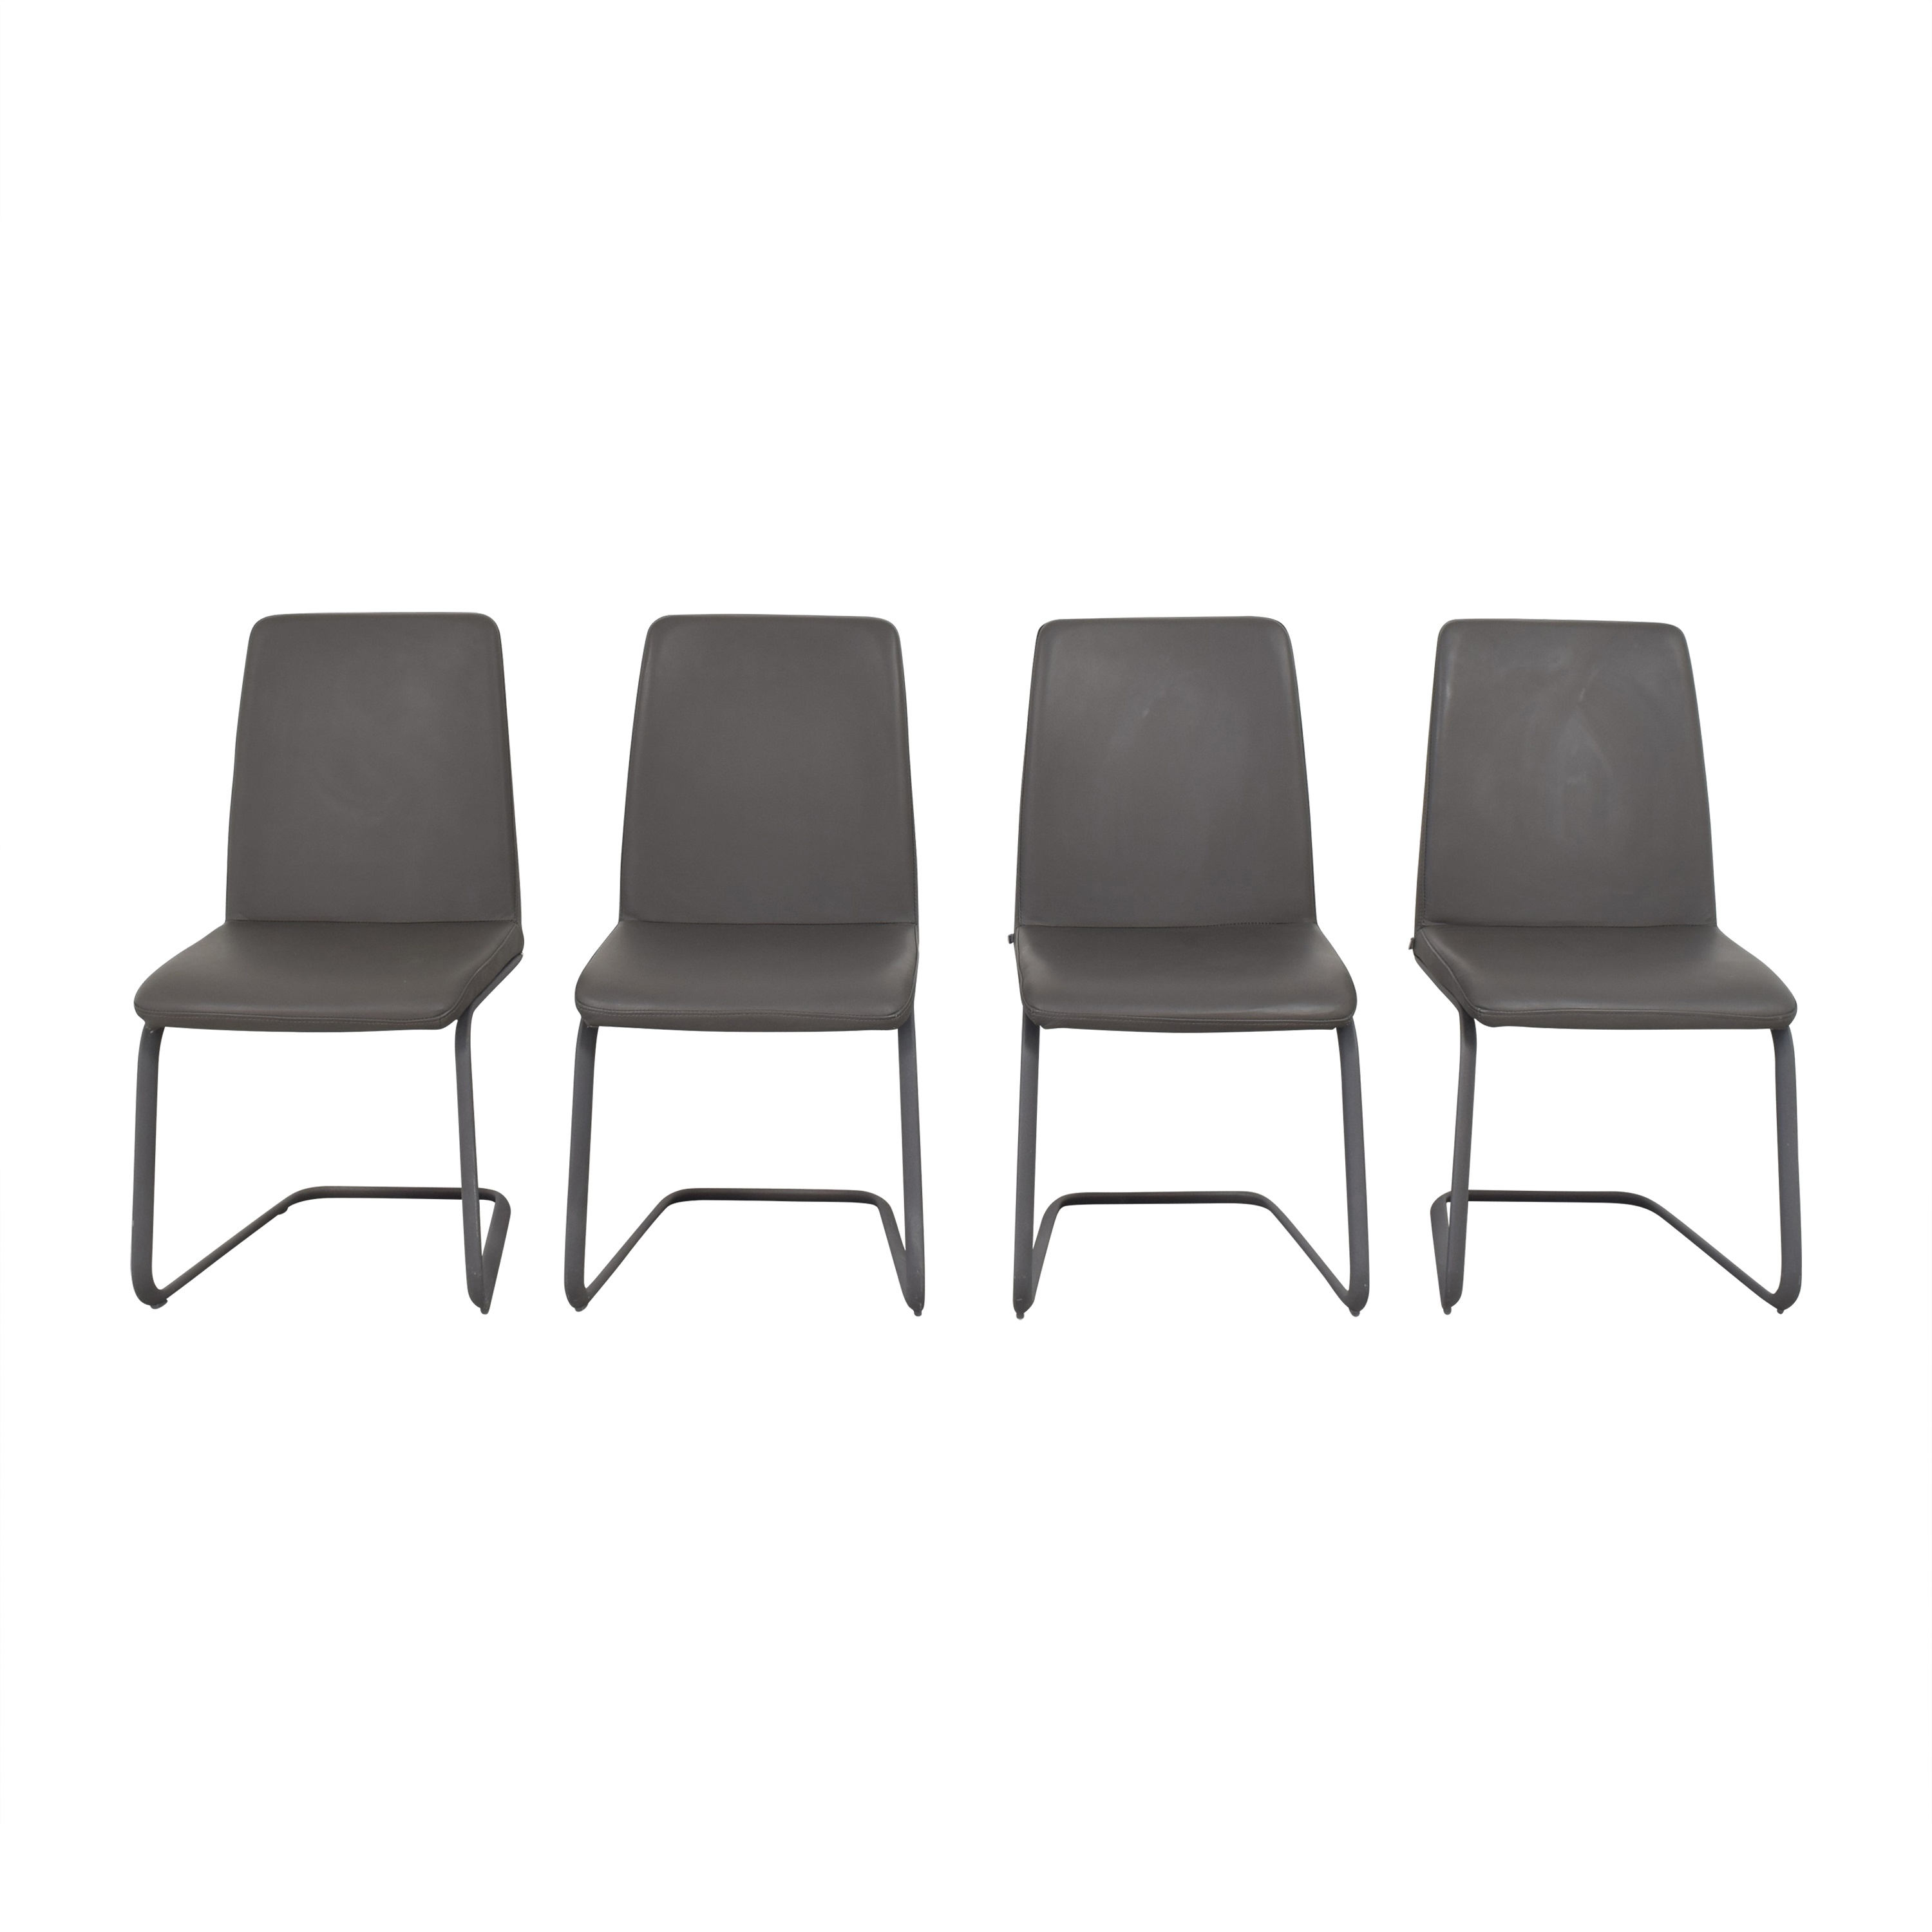 BoConcept Lausanne Dining Chairs / Dining Chairs